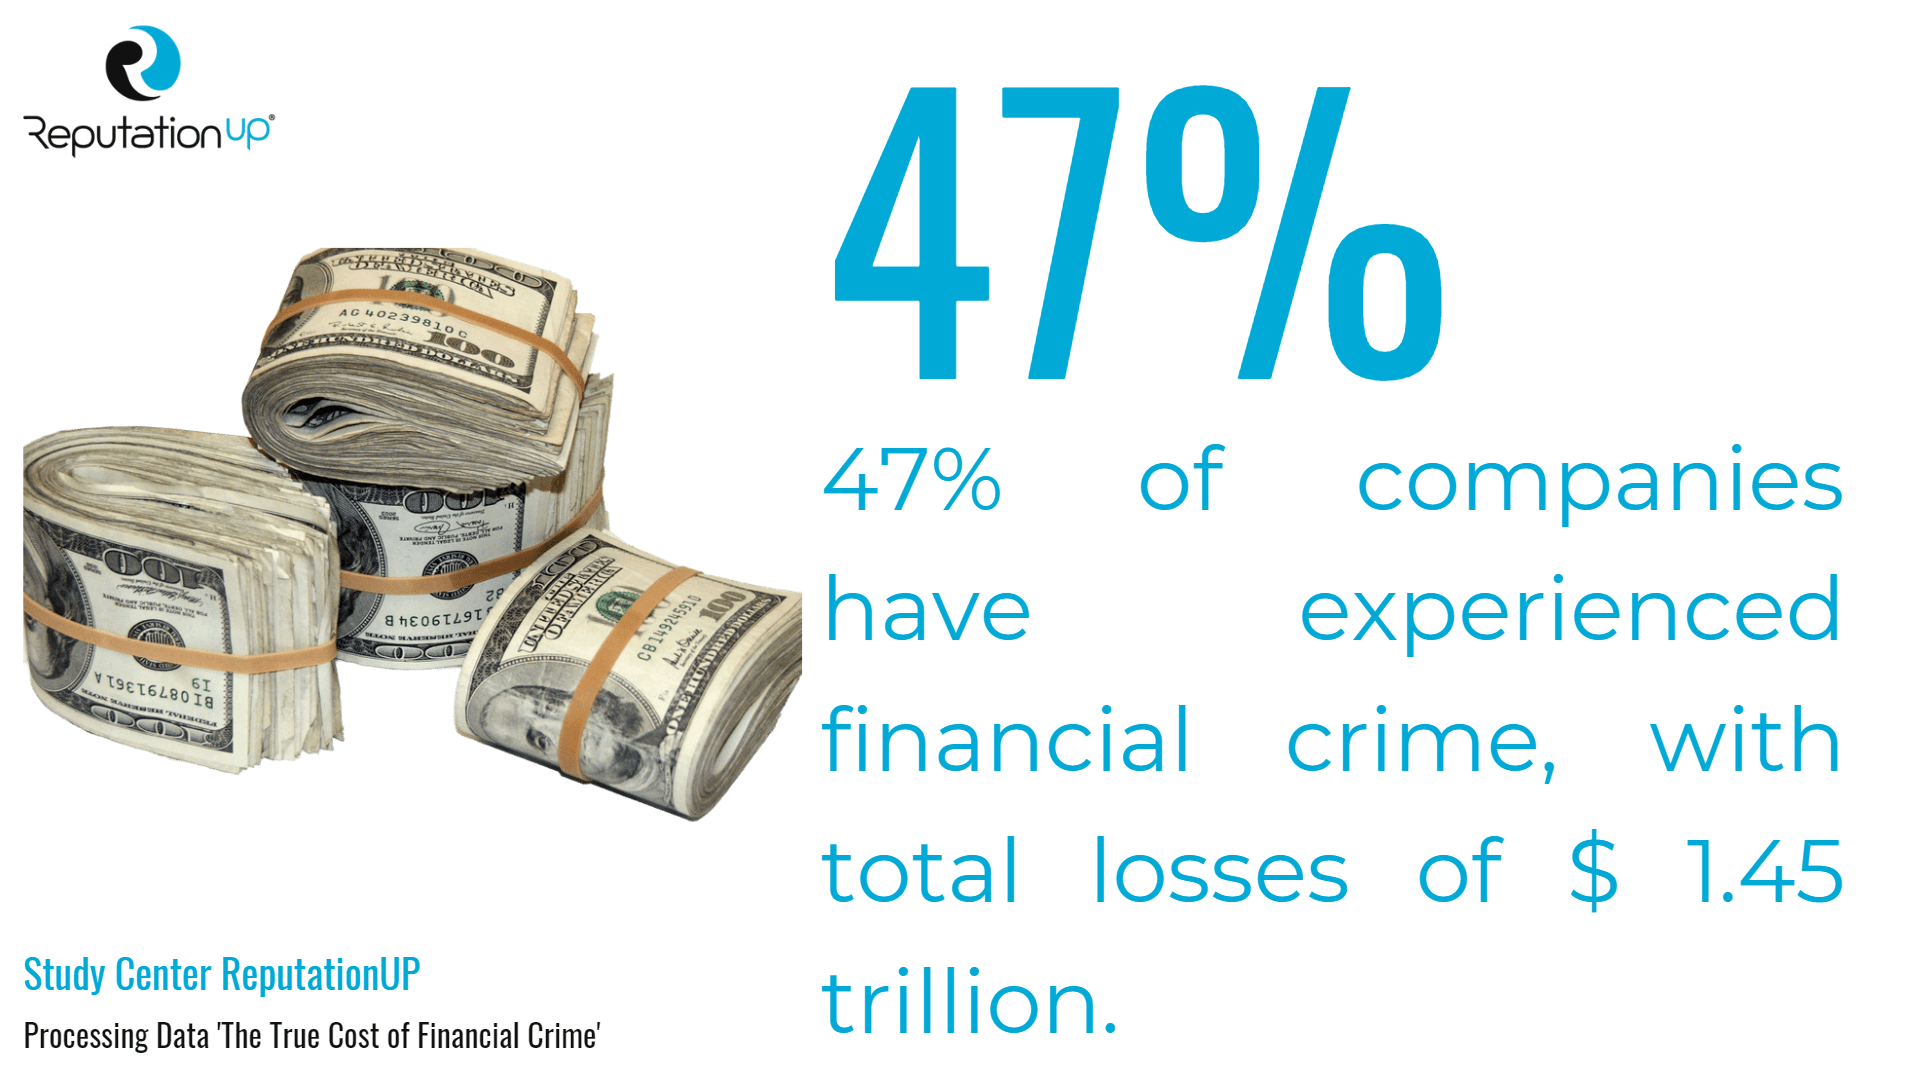 the true cost of financial crime study center reputationup